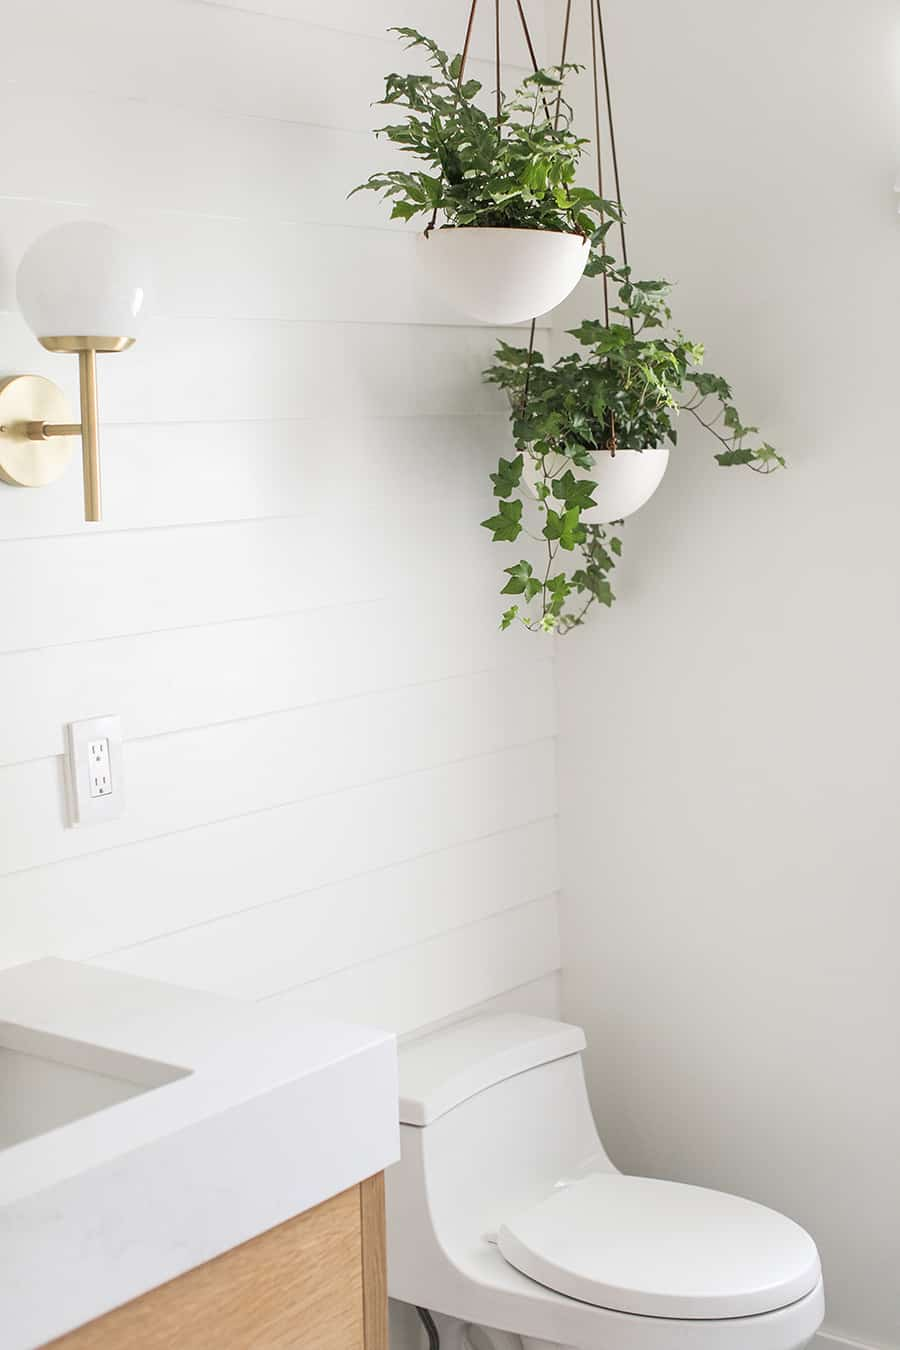 Kohler toilet with shiplap and hanging plants.